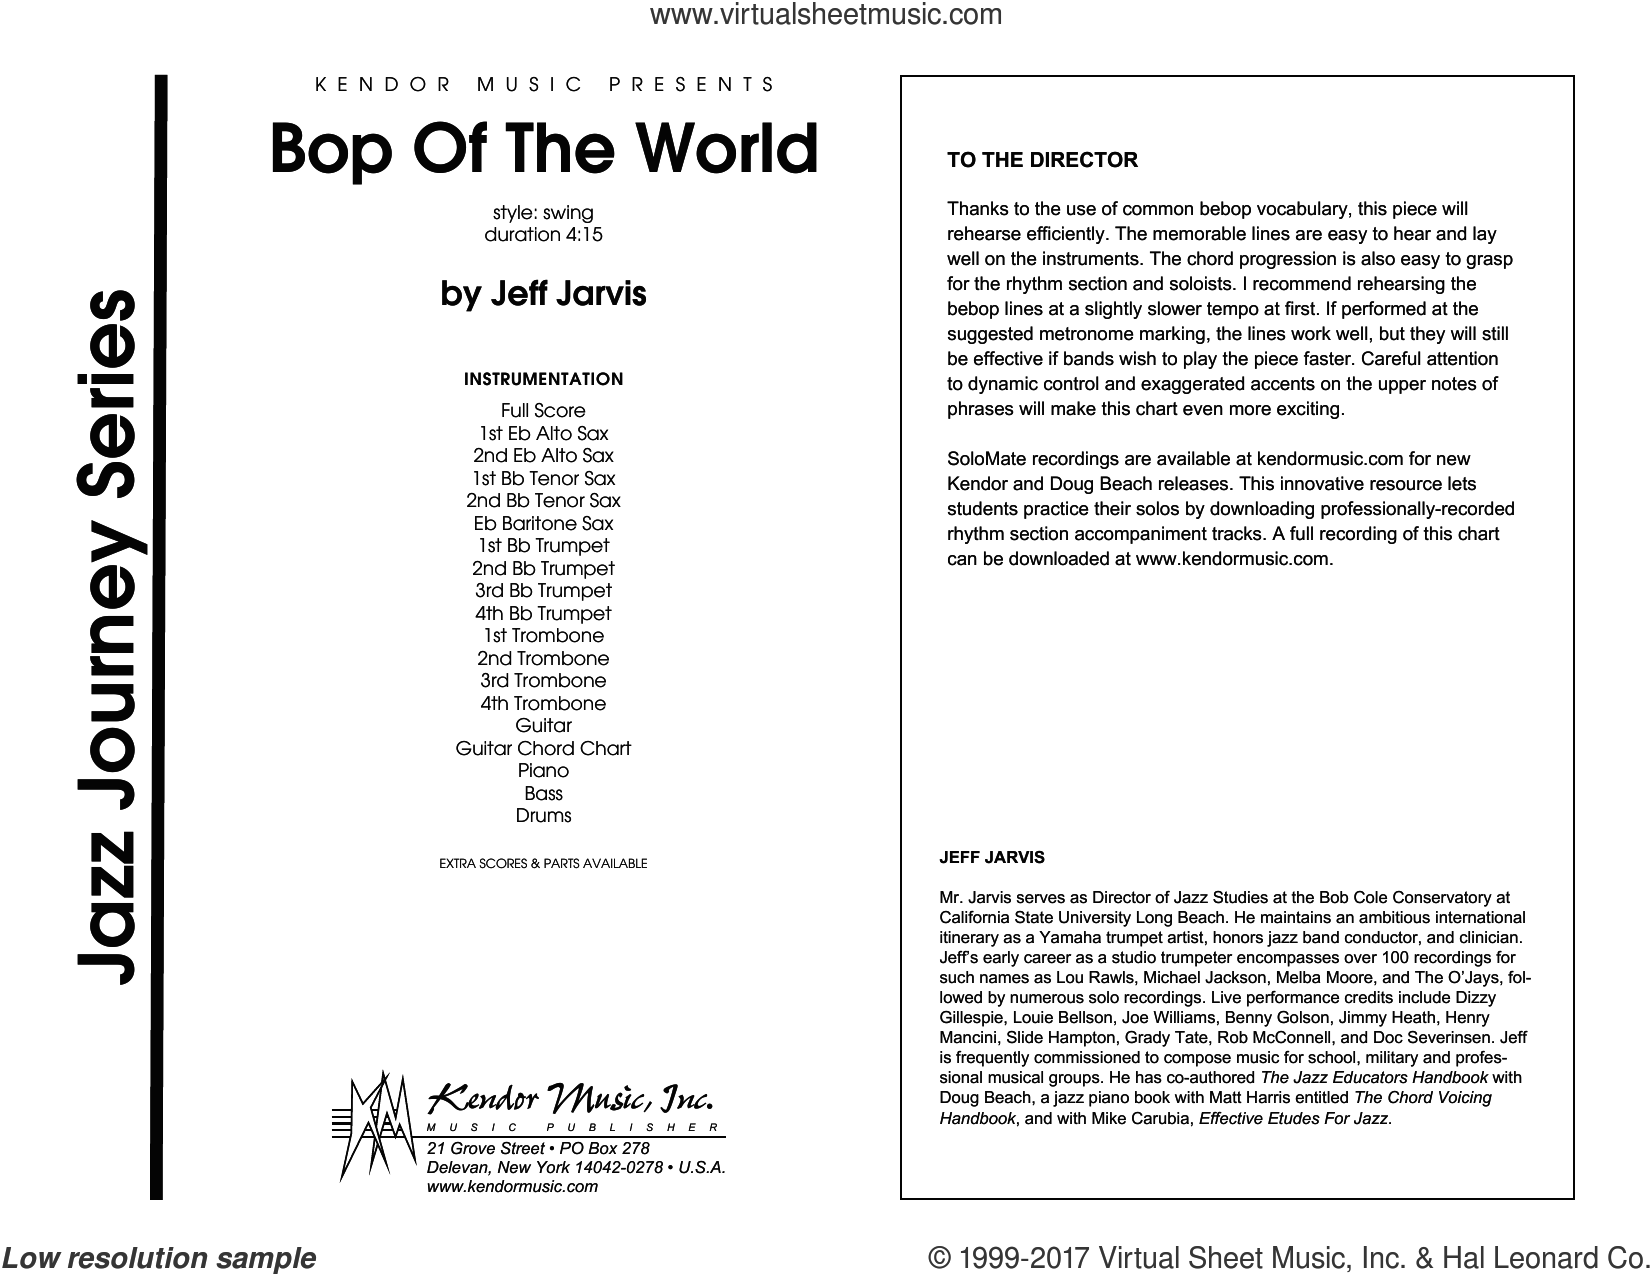 Bop Of The World (COMPLETE) sheet music for jazz band by Jeff Jarvis, intermediate skill level